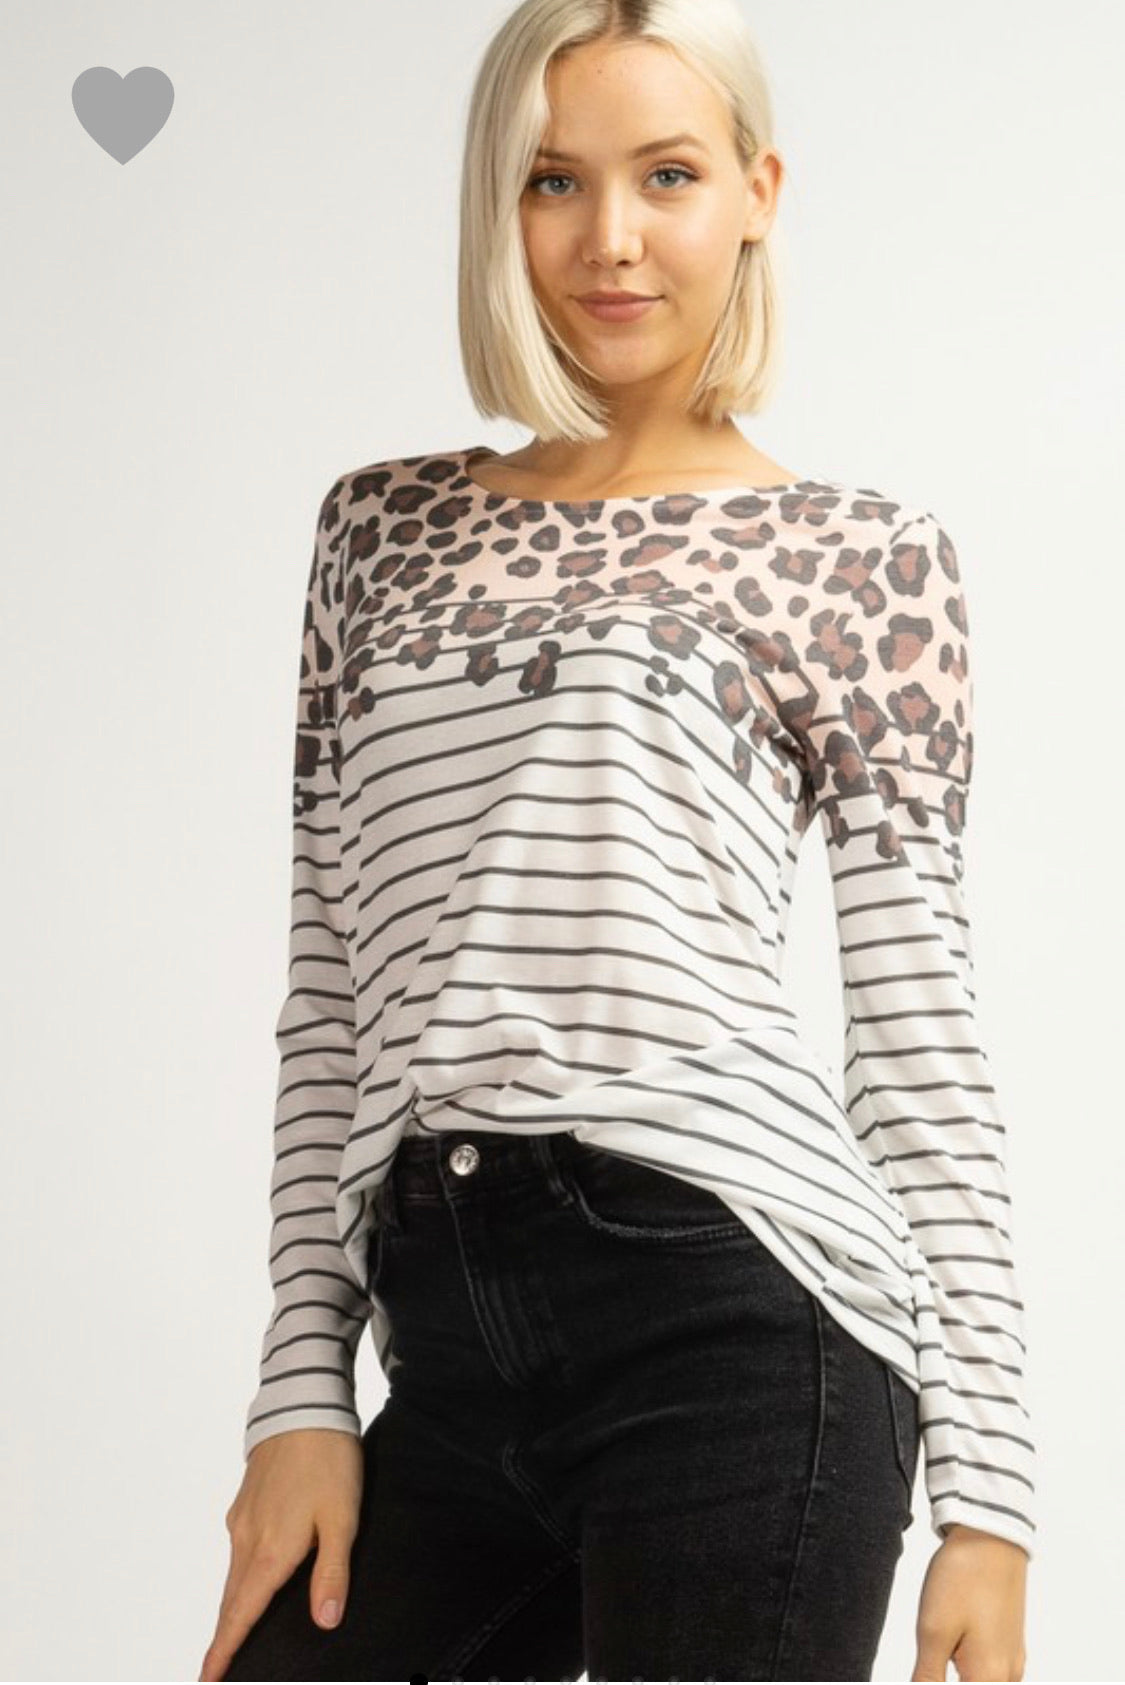 Leopard Print/Striped Long Sleeve Shirt